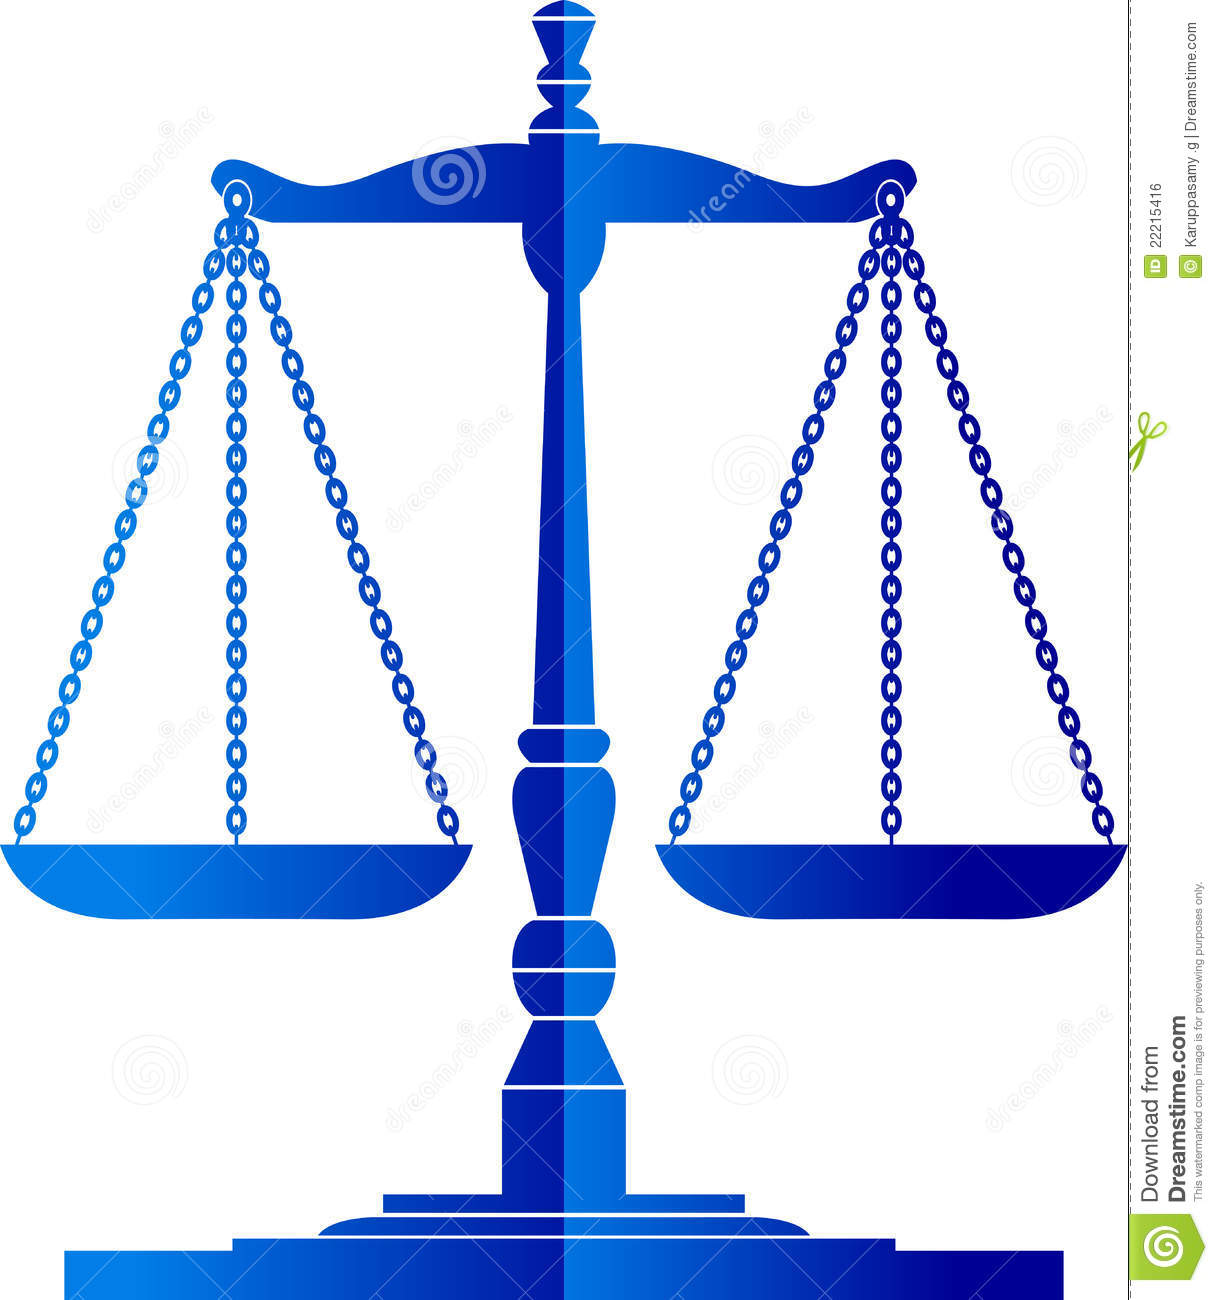 More similar stock images of ` Justice scales `